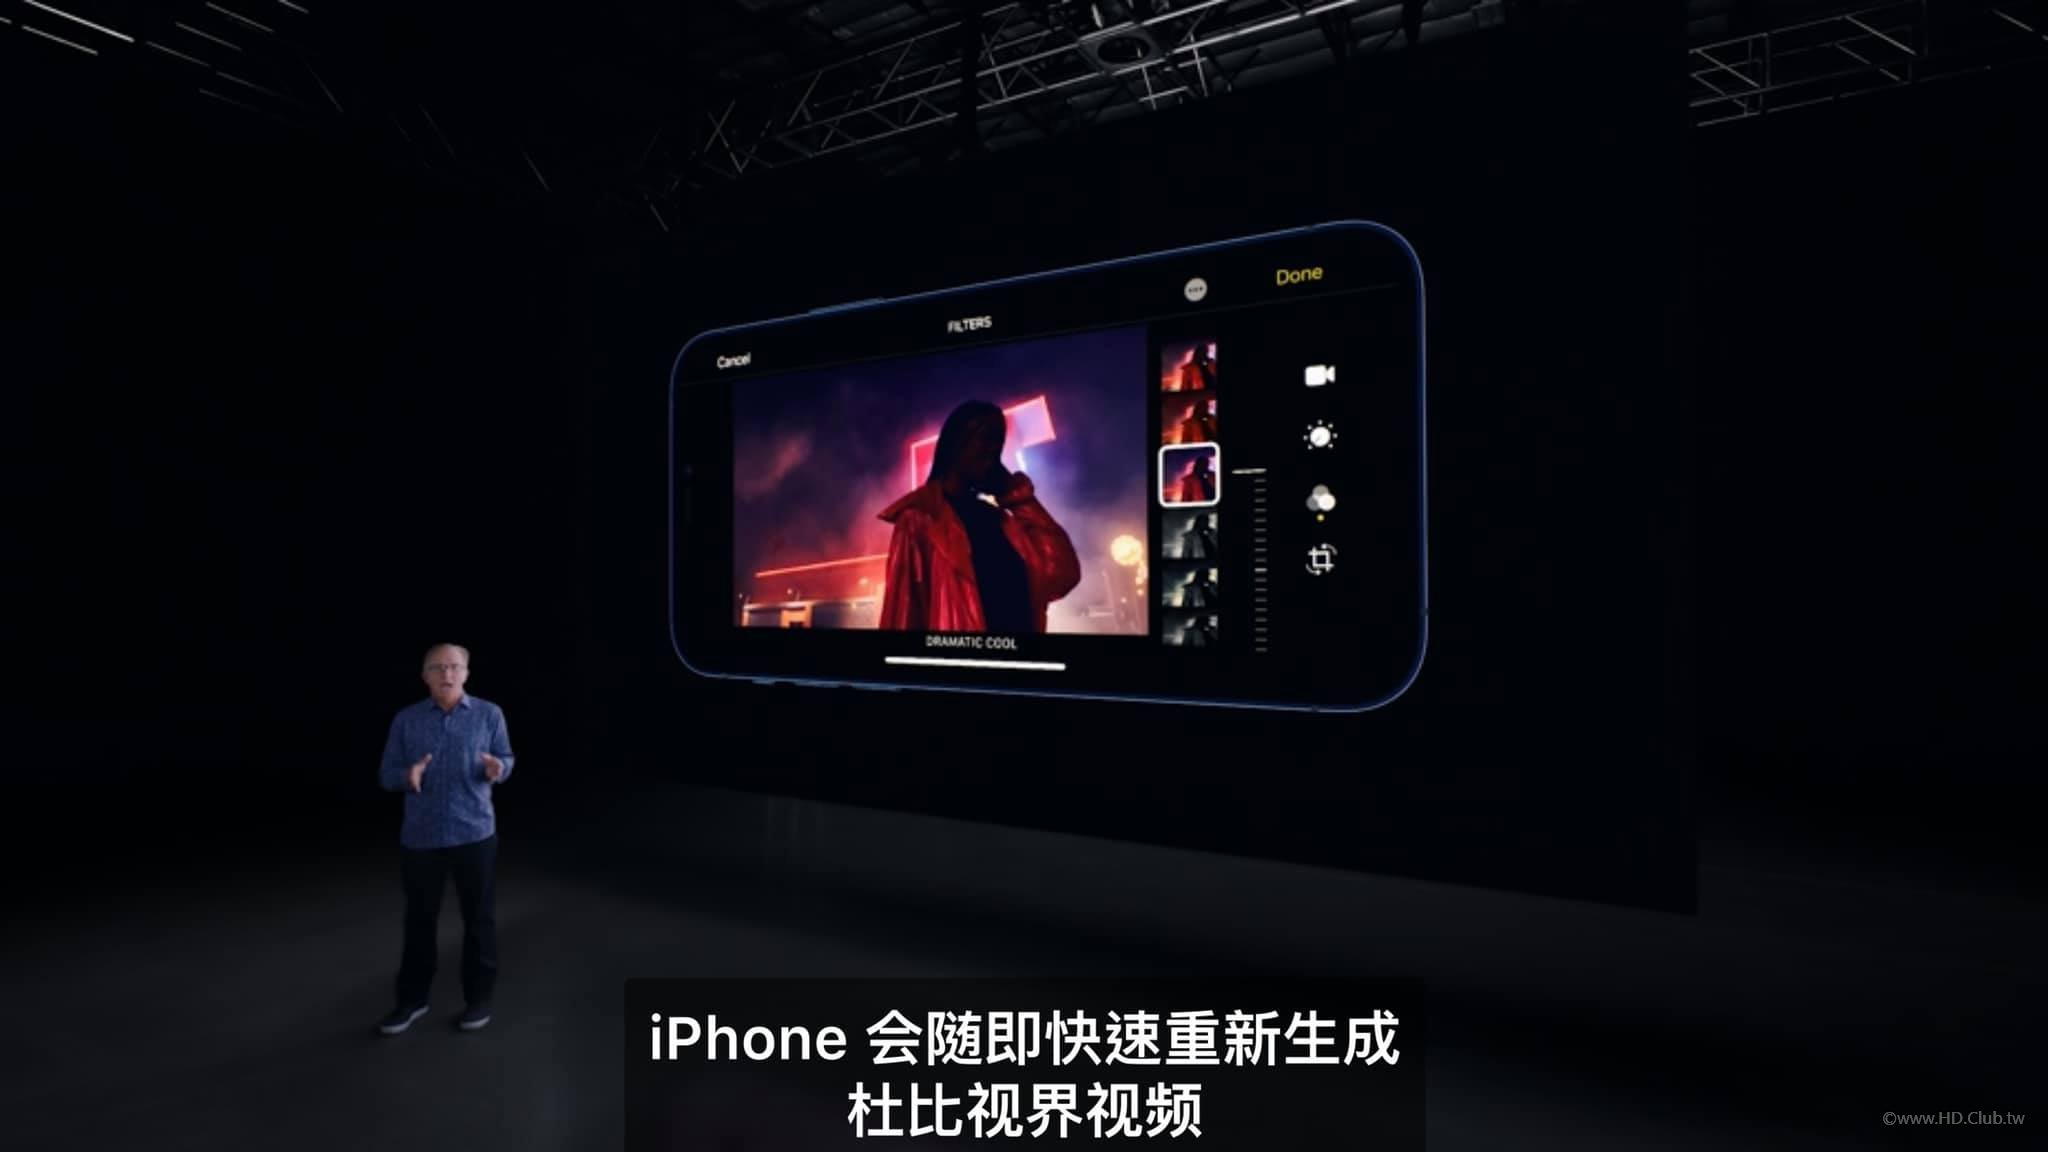 iPhone 12 Pro - Dolby Vision